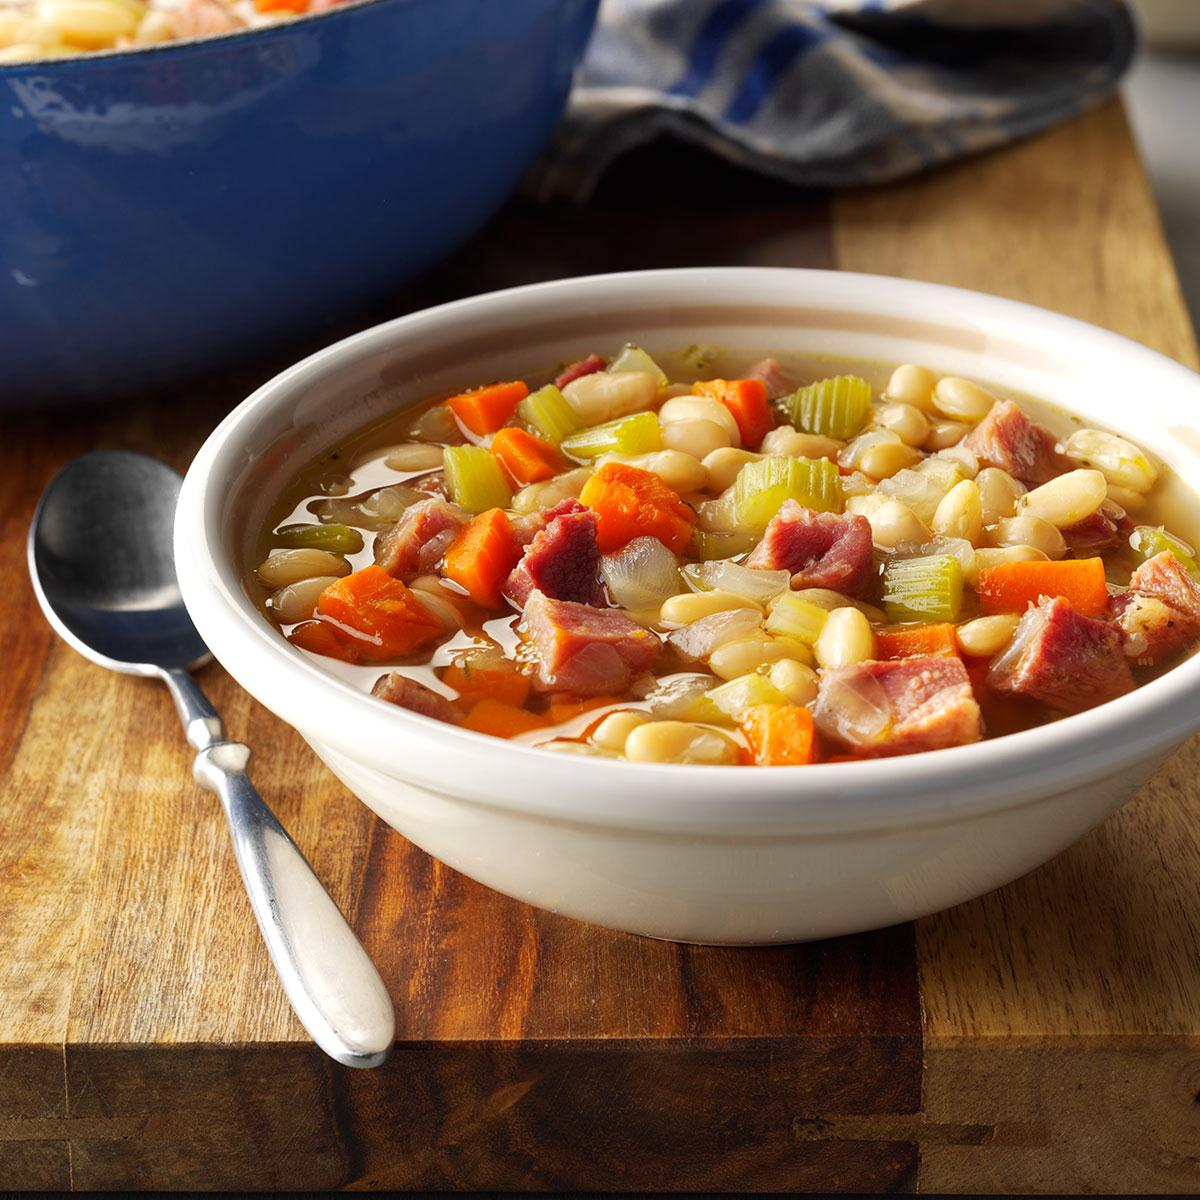 Bean soup is a favorite of home cooking